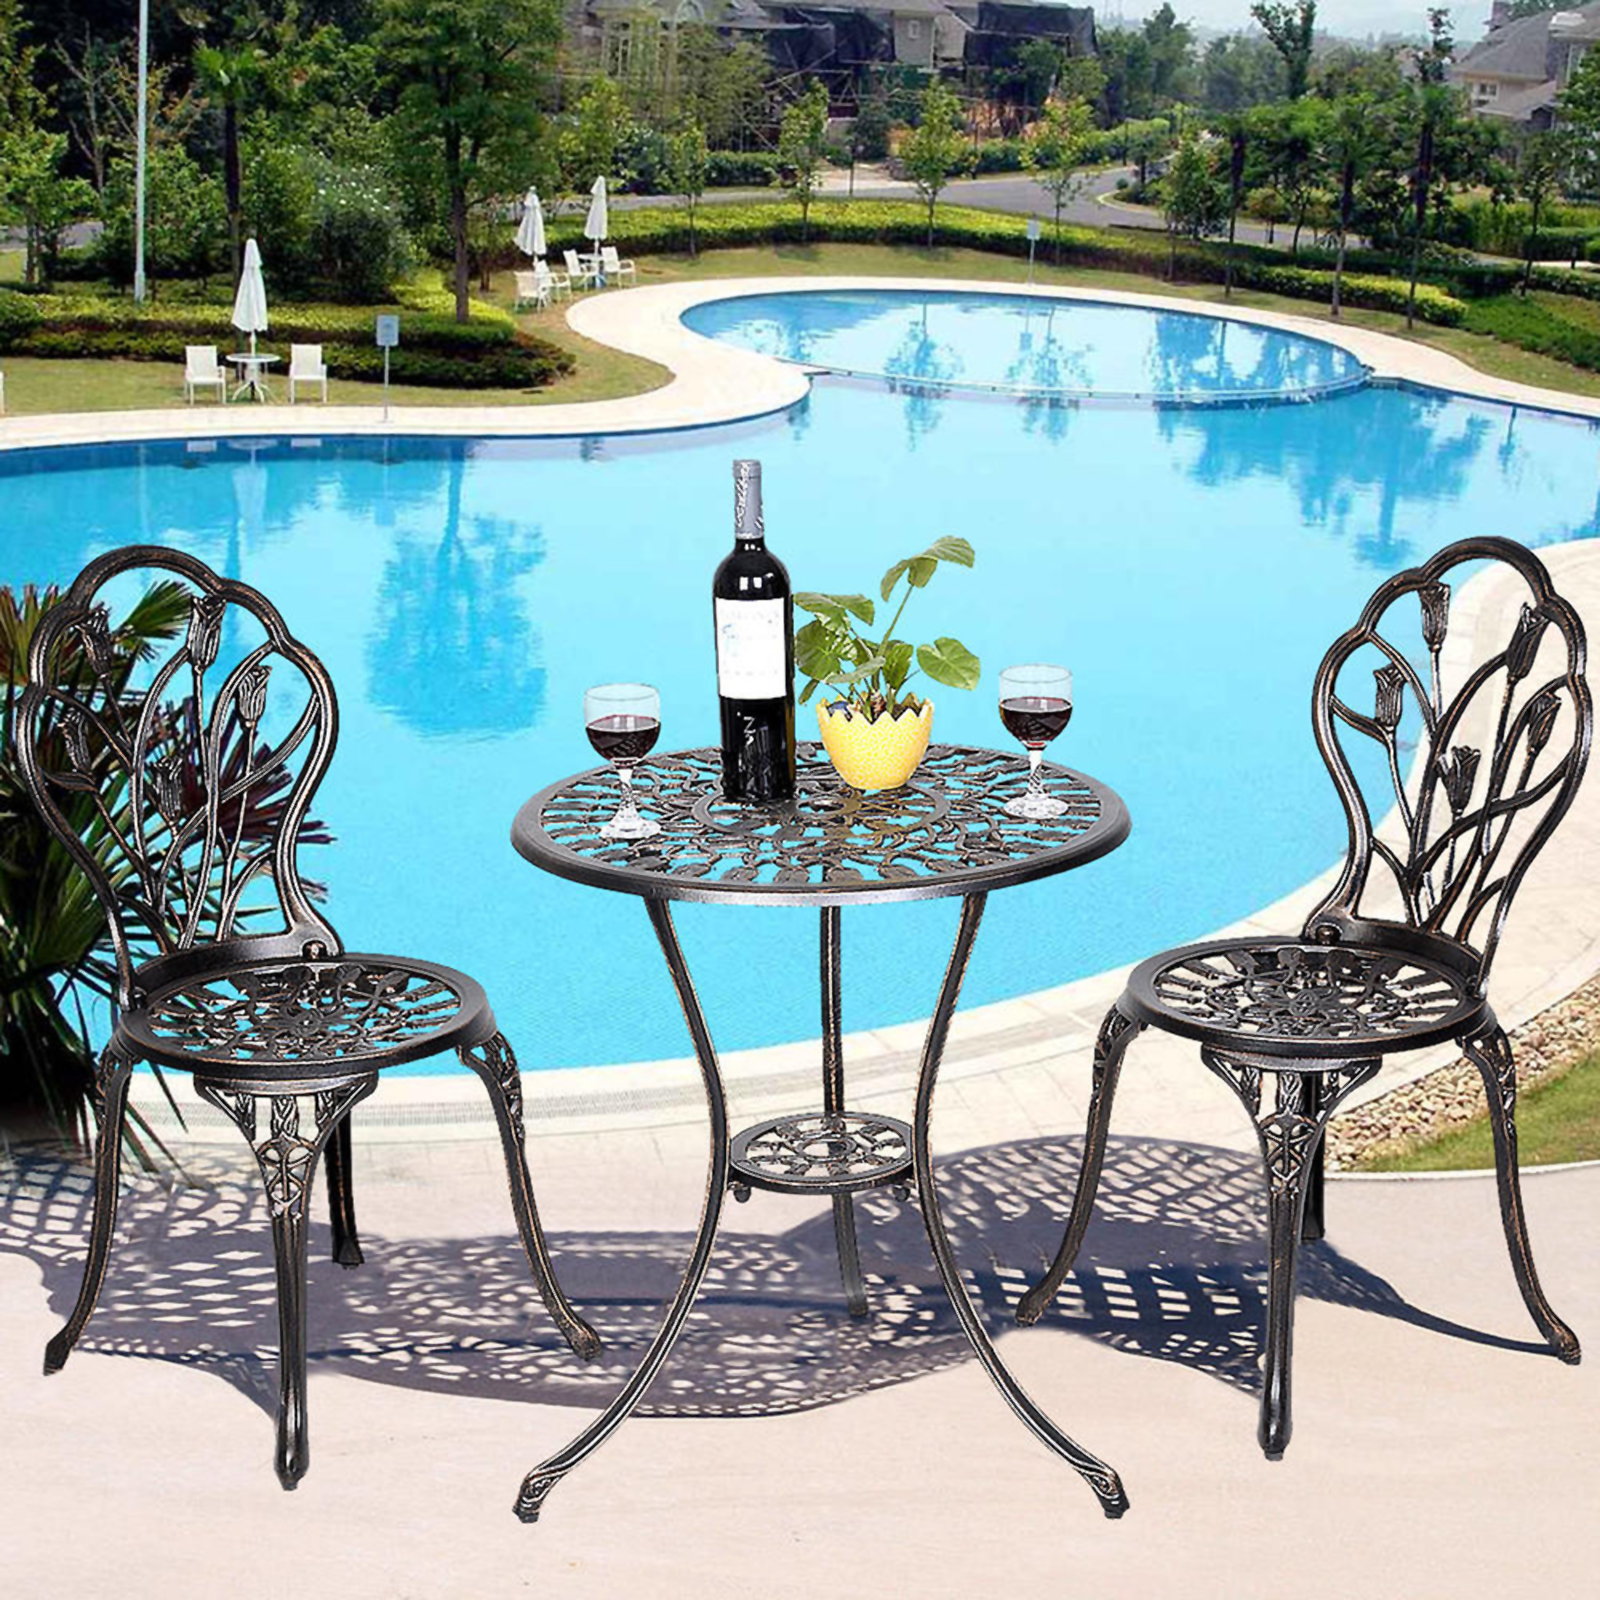 patio bistro table and chairs chair covers for sale cape town outdoor sets sears goplus furniture cast aluminum tulip design set in antique copper